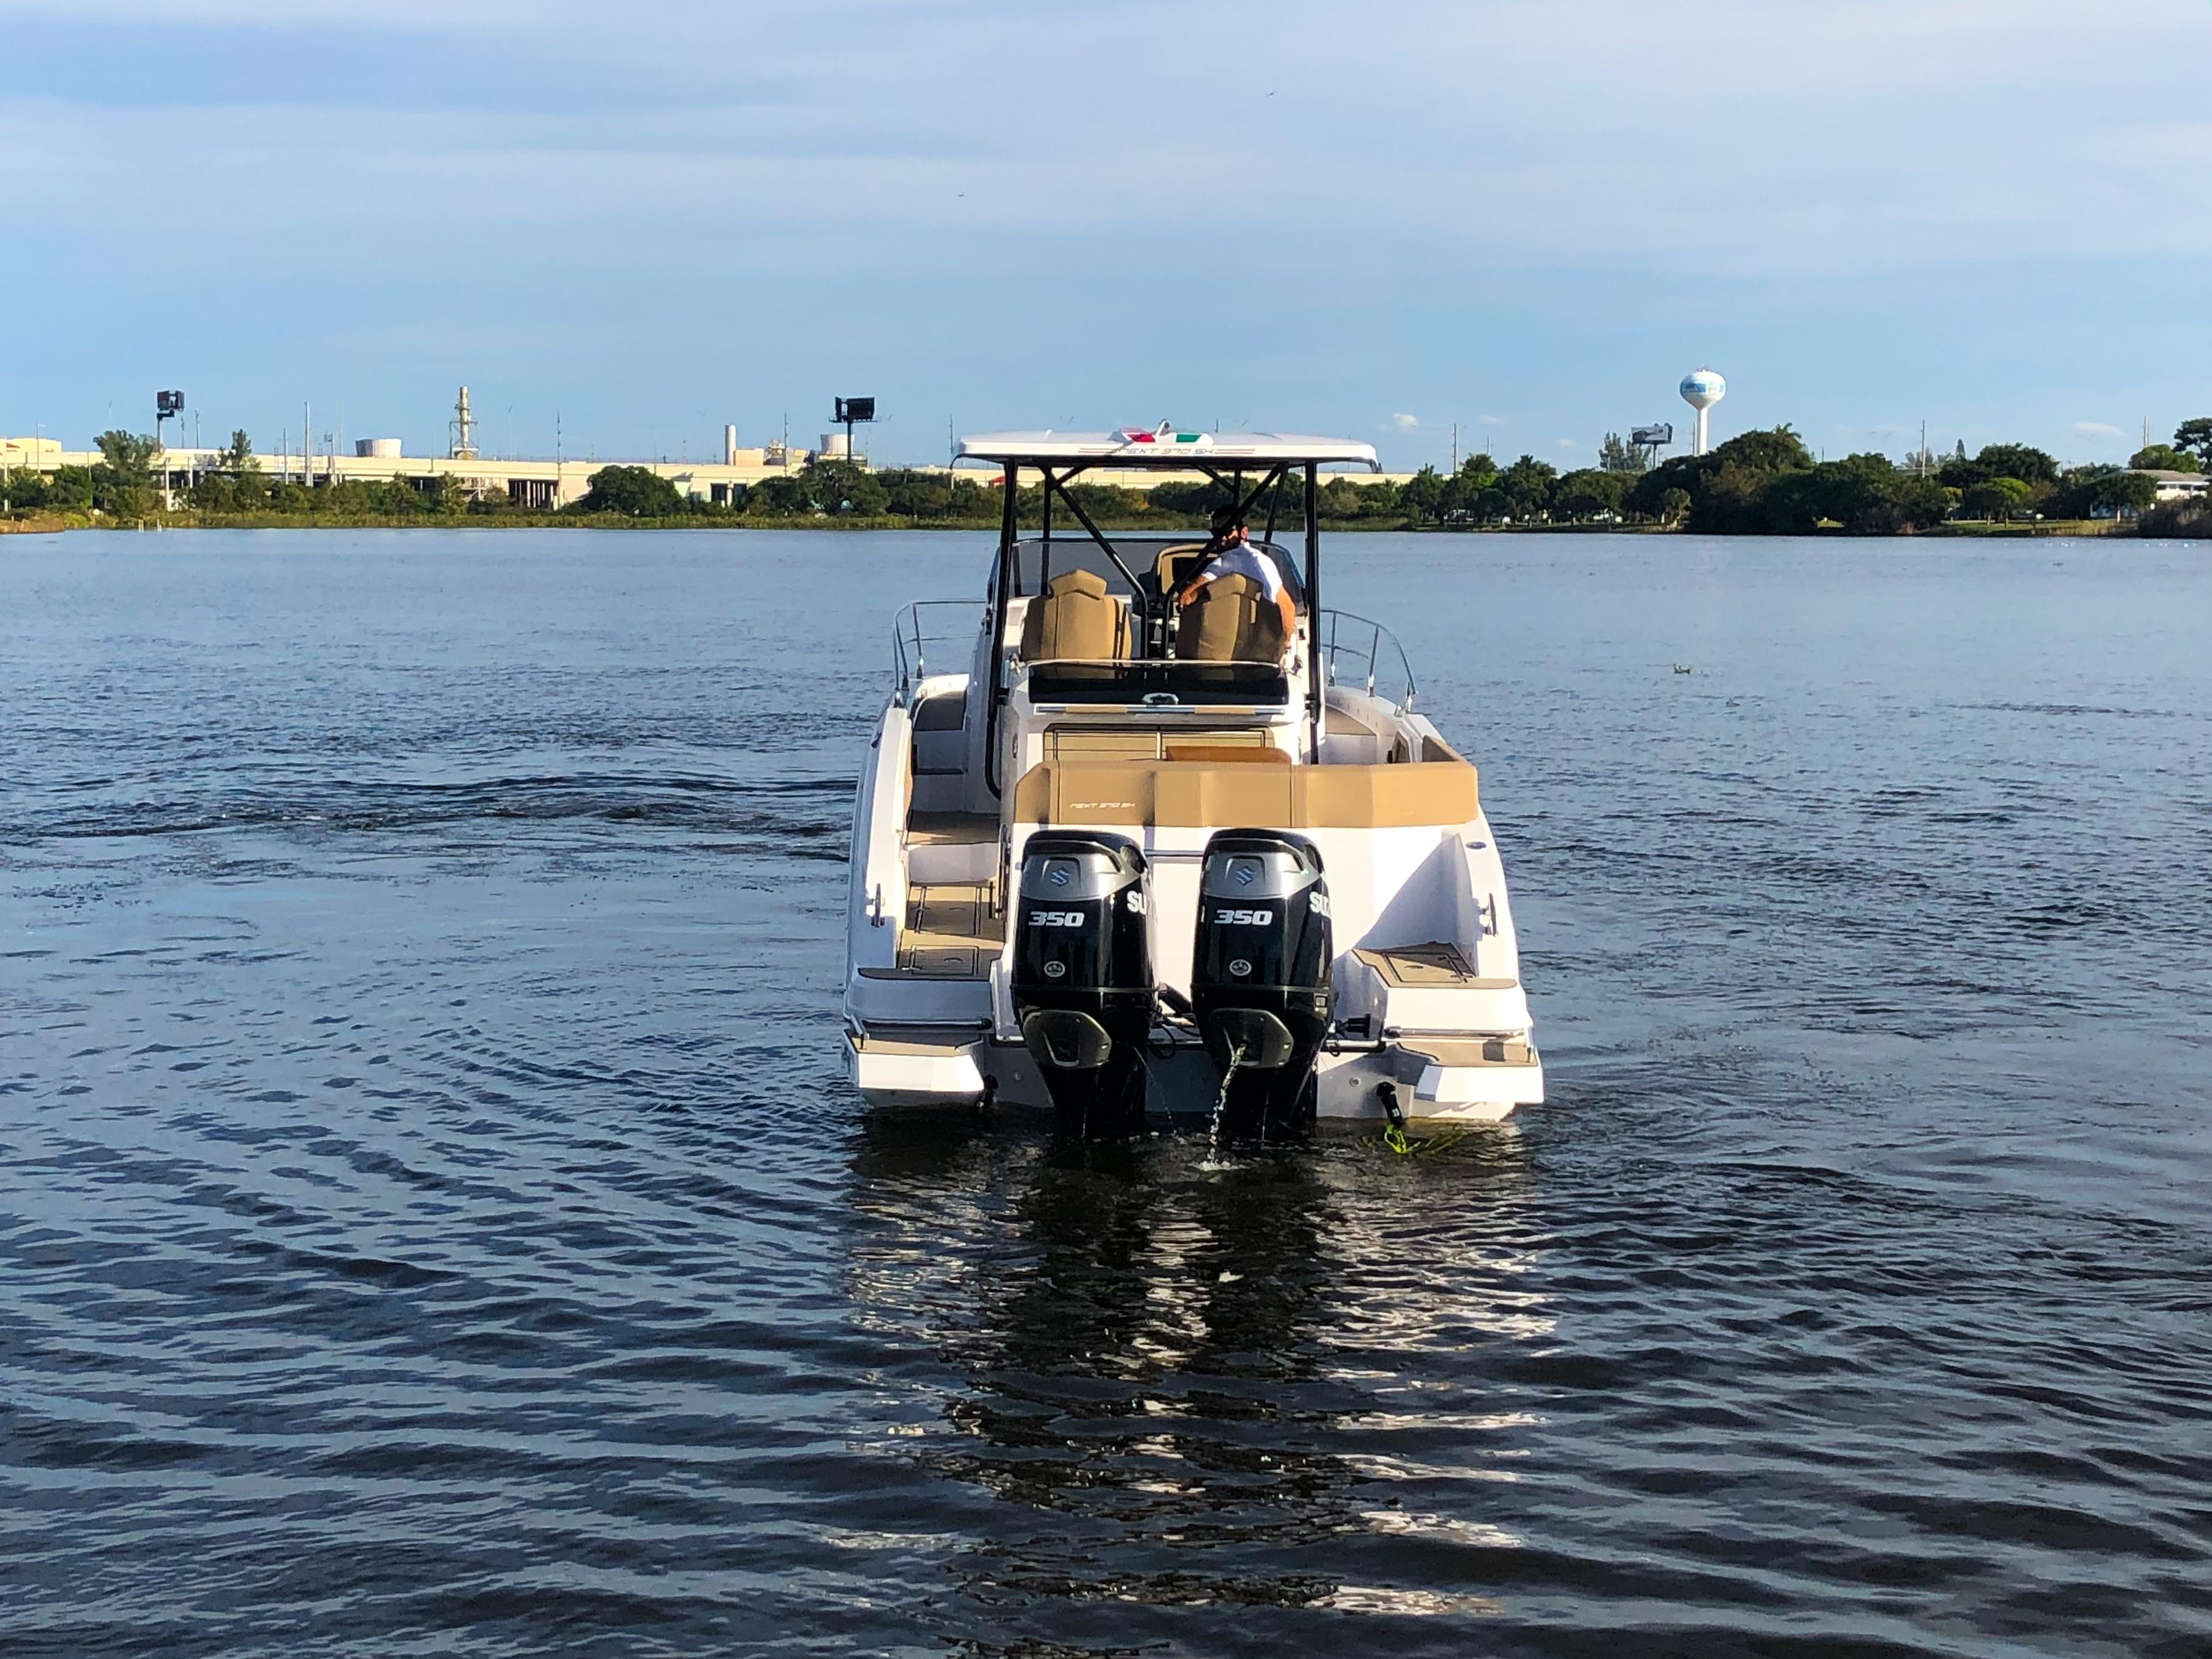 Thumbnail 60 for New 2019 Ranieri Next 370 SH boat for sale in West Palm Beach, FL